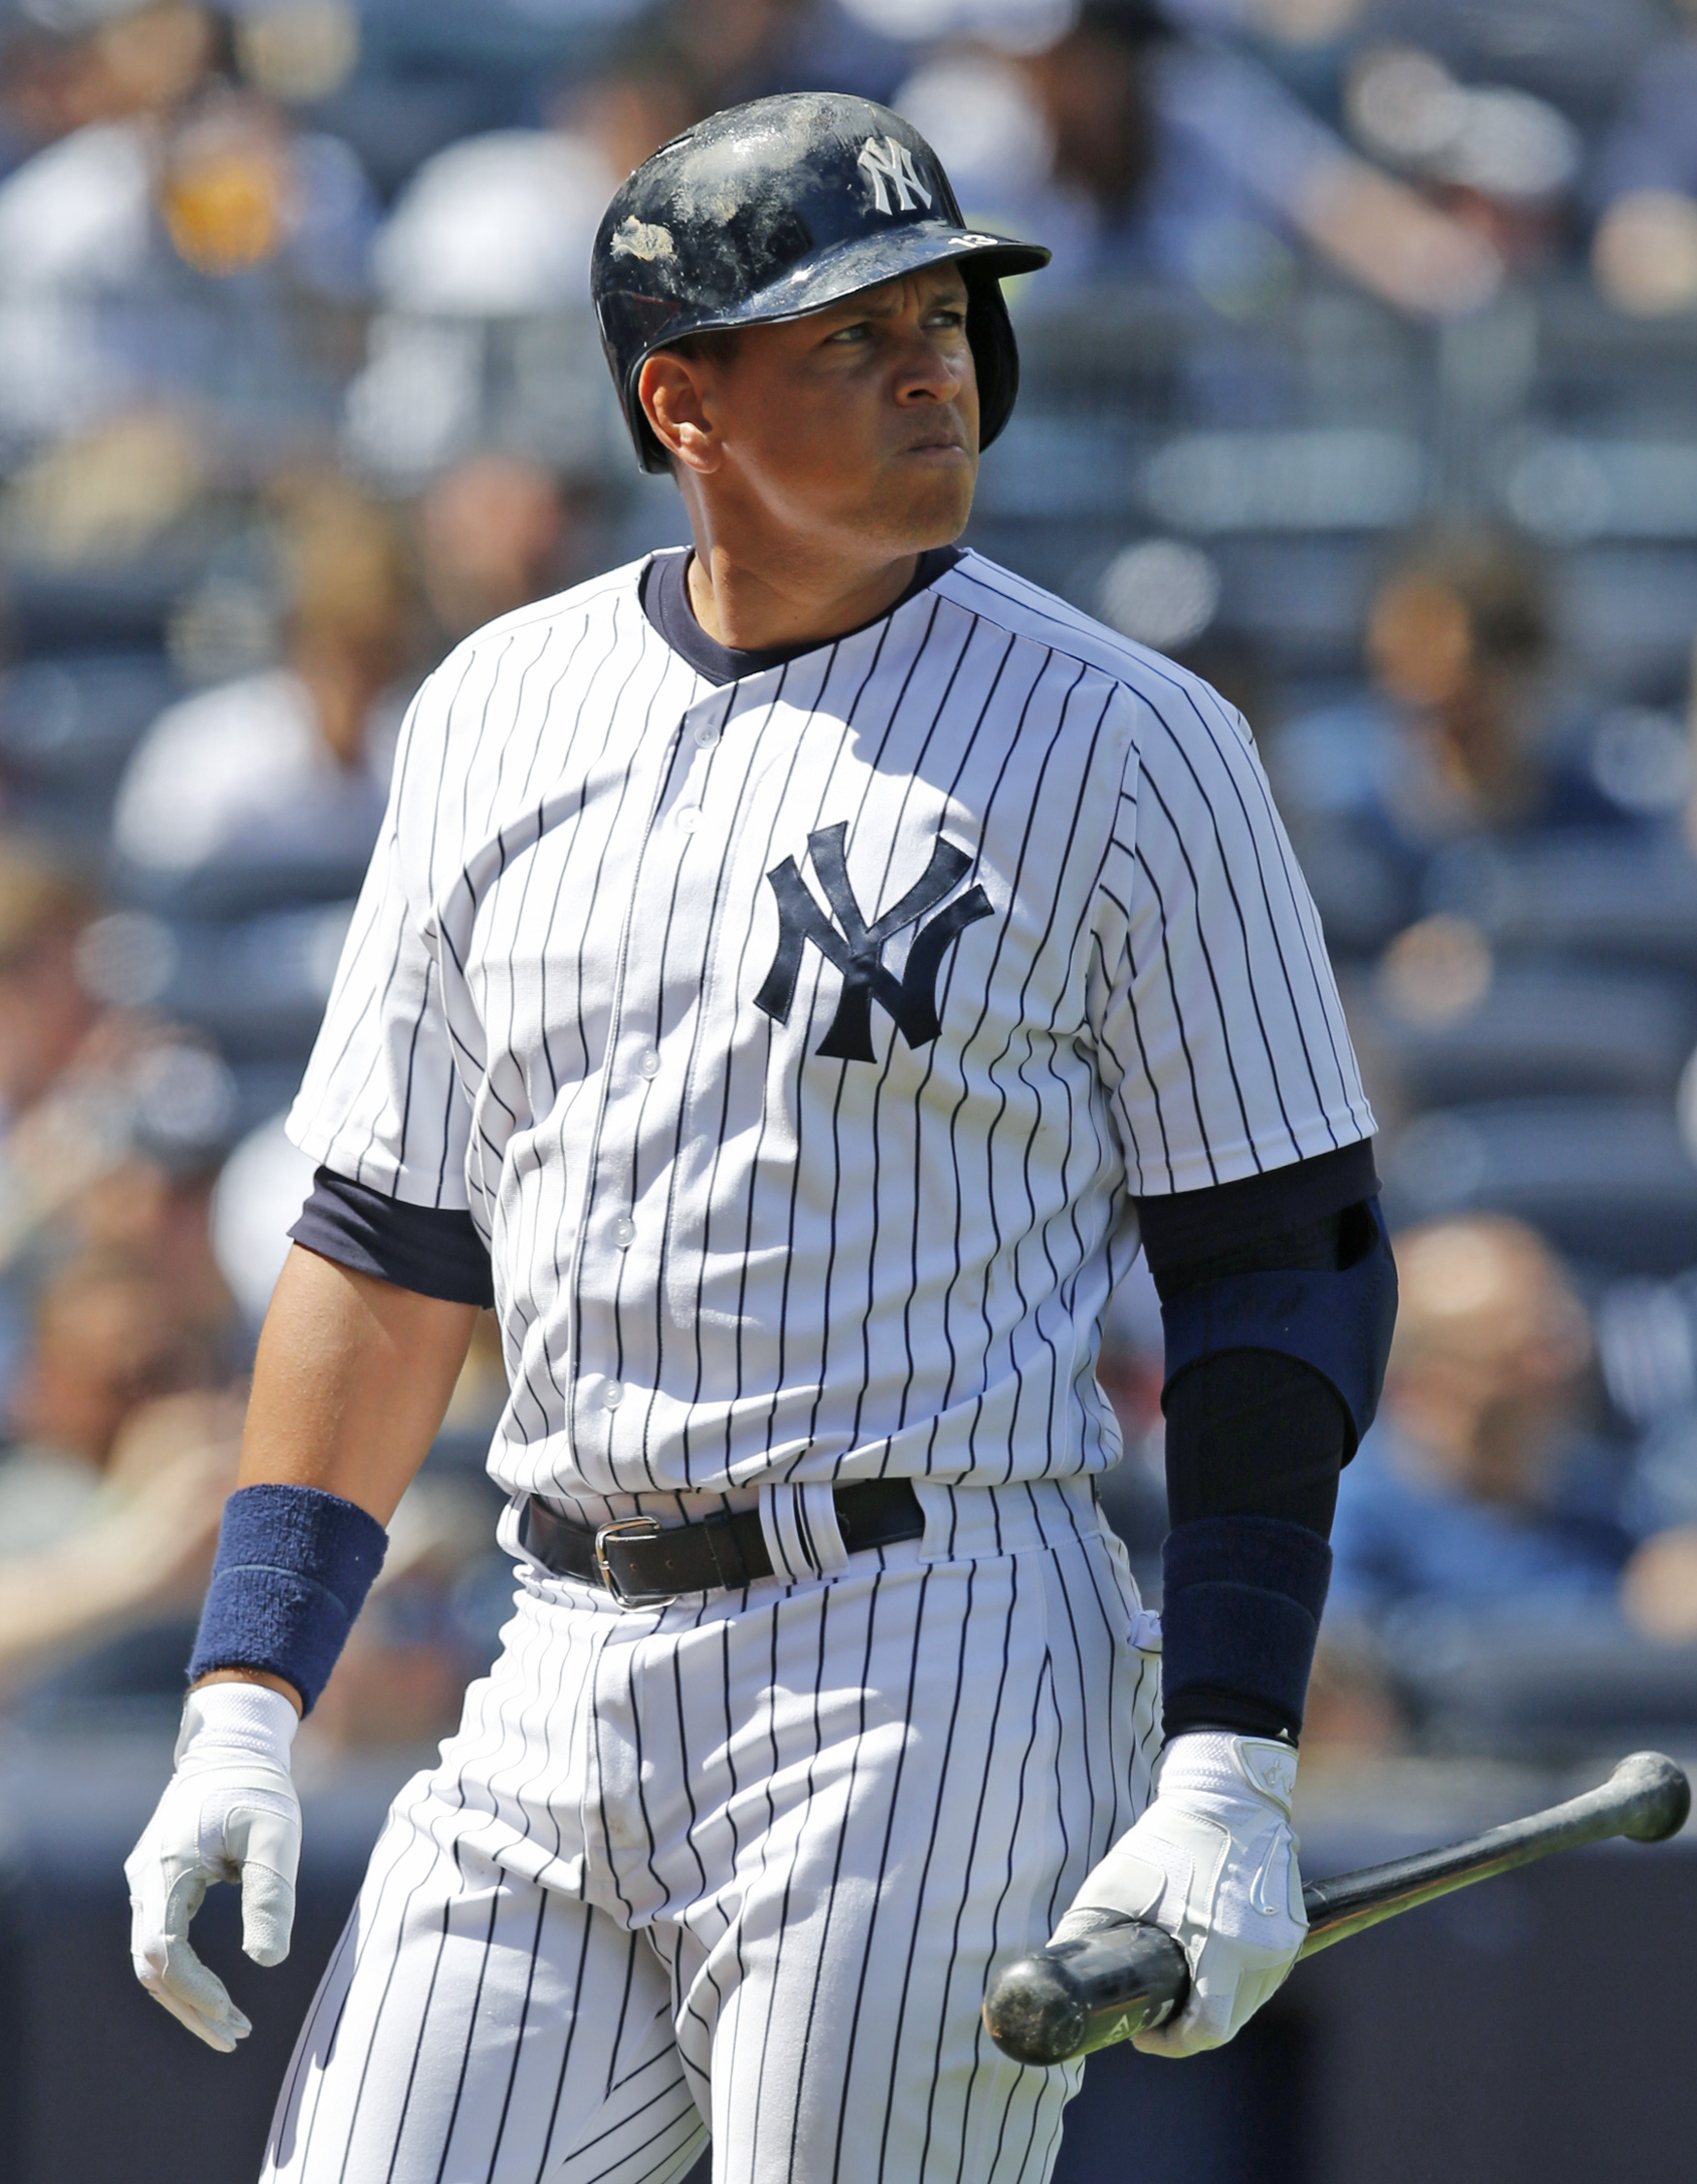 New York Yankees designated hitter Alex Rodriguez reacts walking back to the dugout after striking out in the fourth inning of a baseball game against the Tampa Bay Rays at Yankee Stadium in New York, Wednesday, April 29, 2015.  (AP Photo/Kathy Willens)